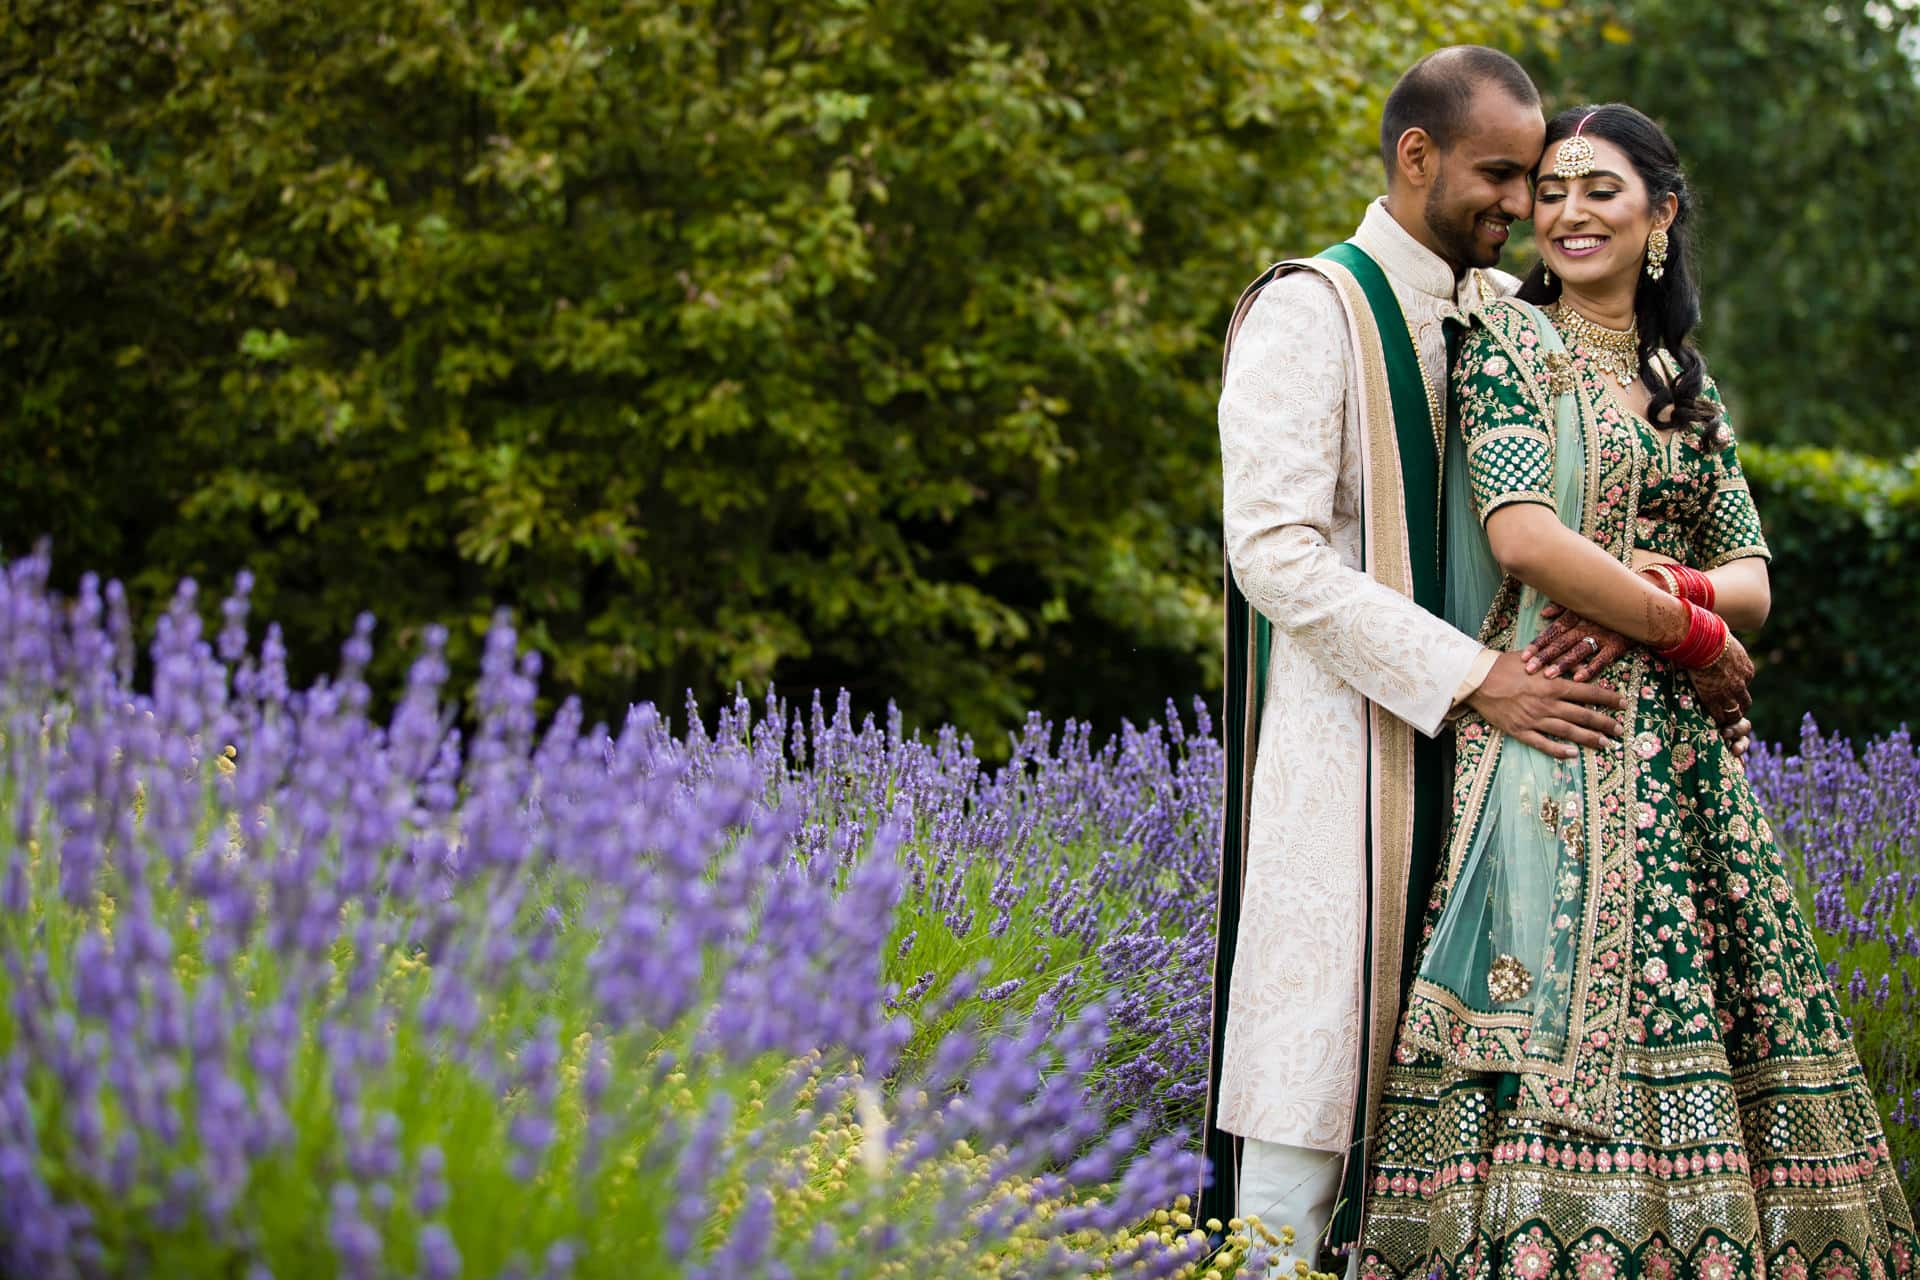 Asian wedding portraits at Oshwal centre, Potters Bar